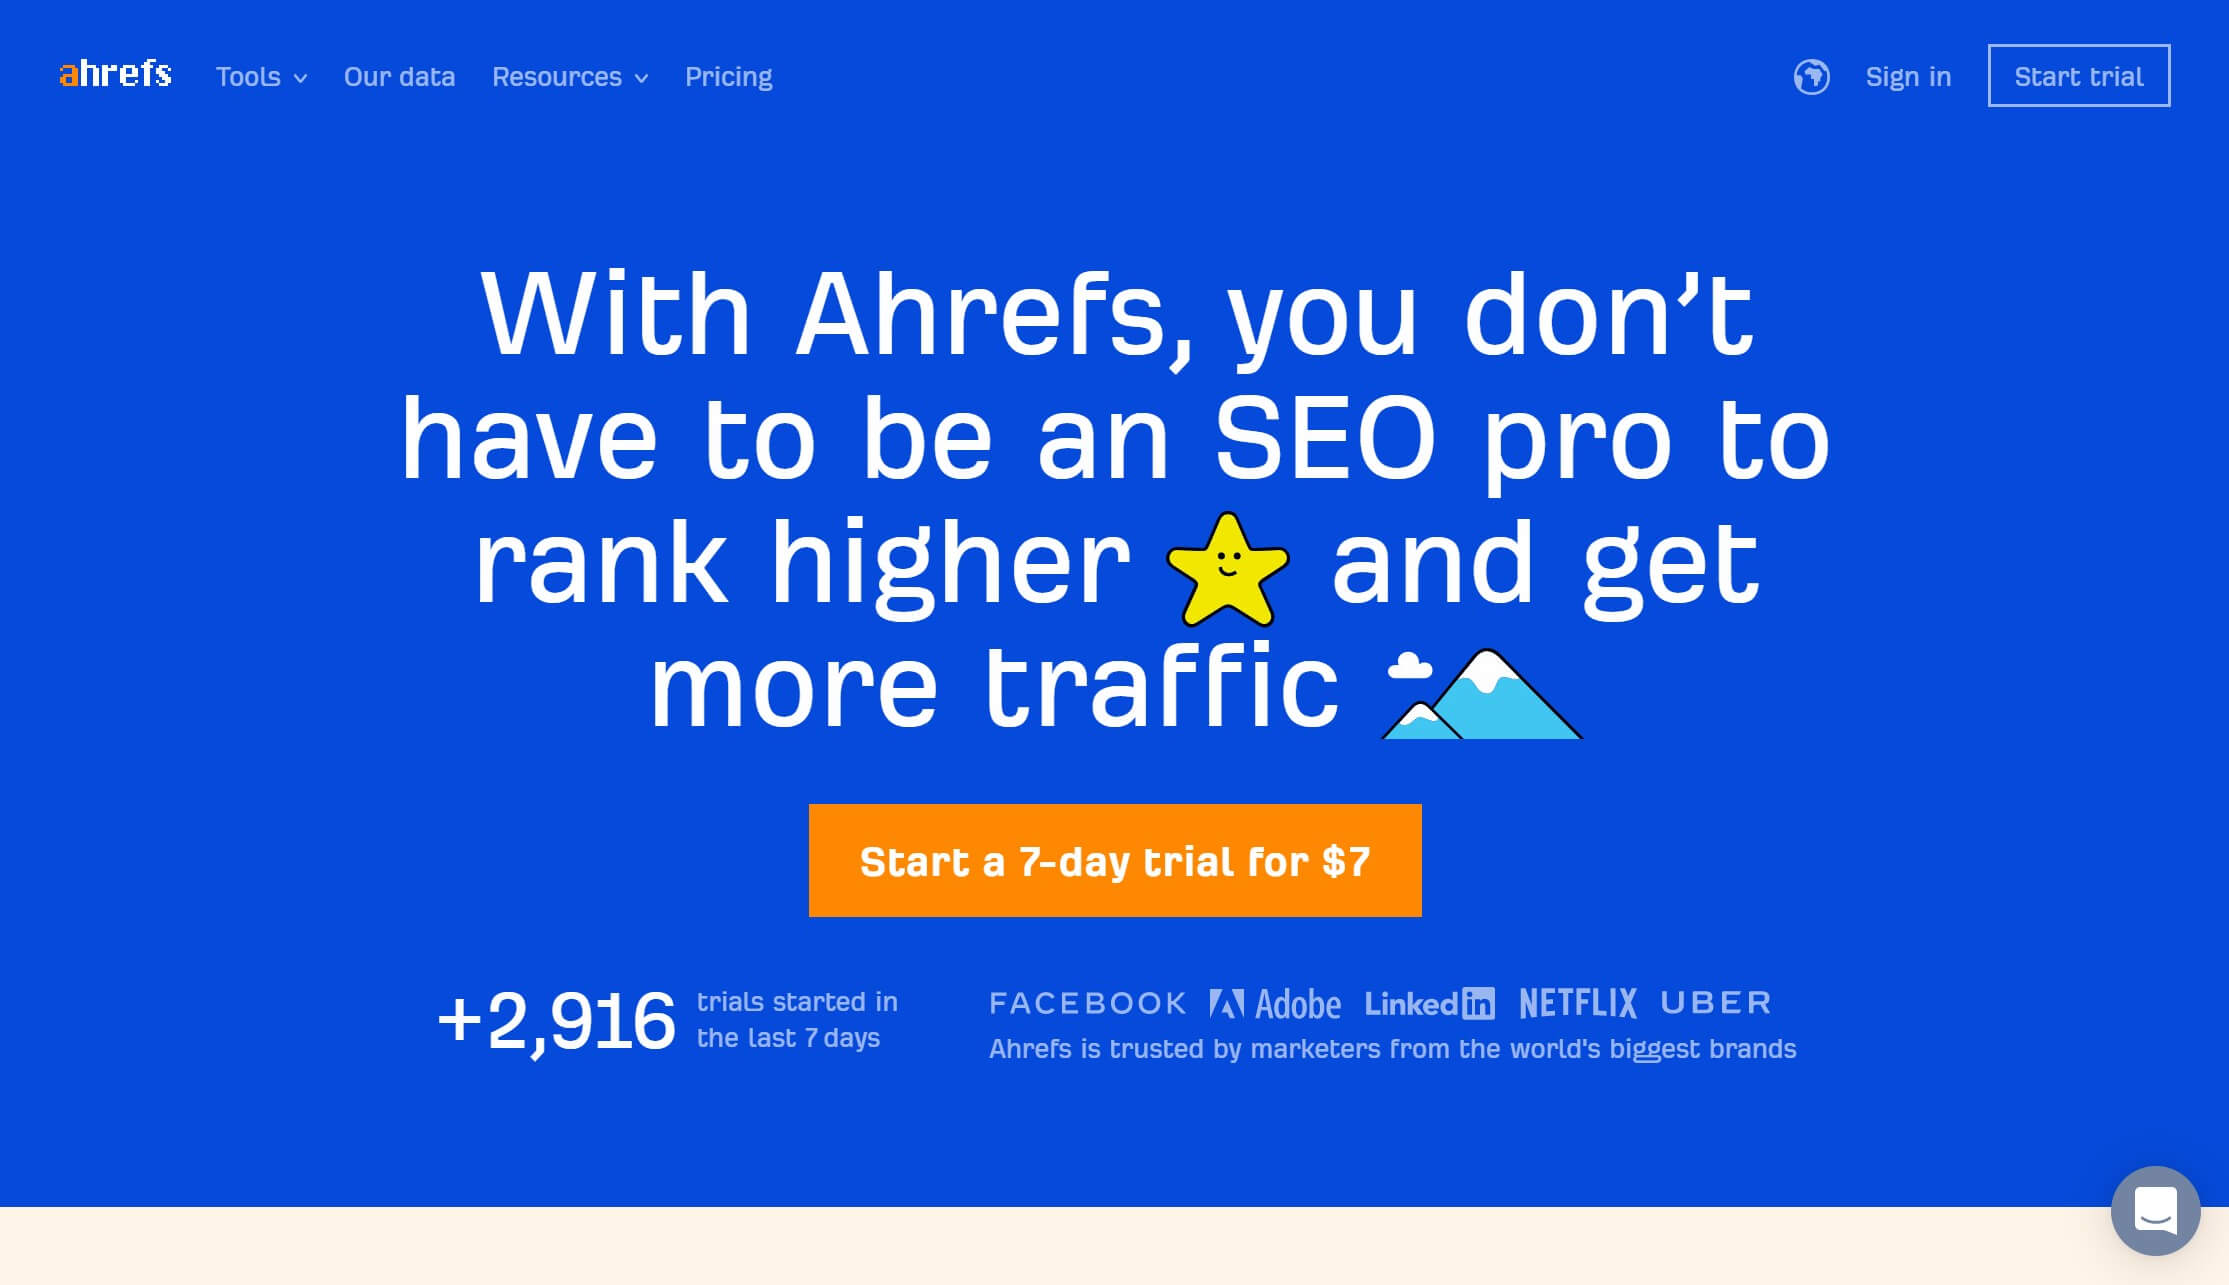 The Ahrefs home page.